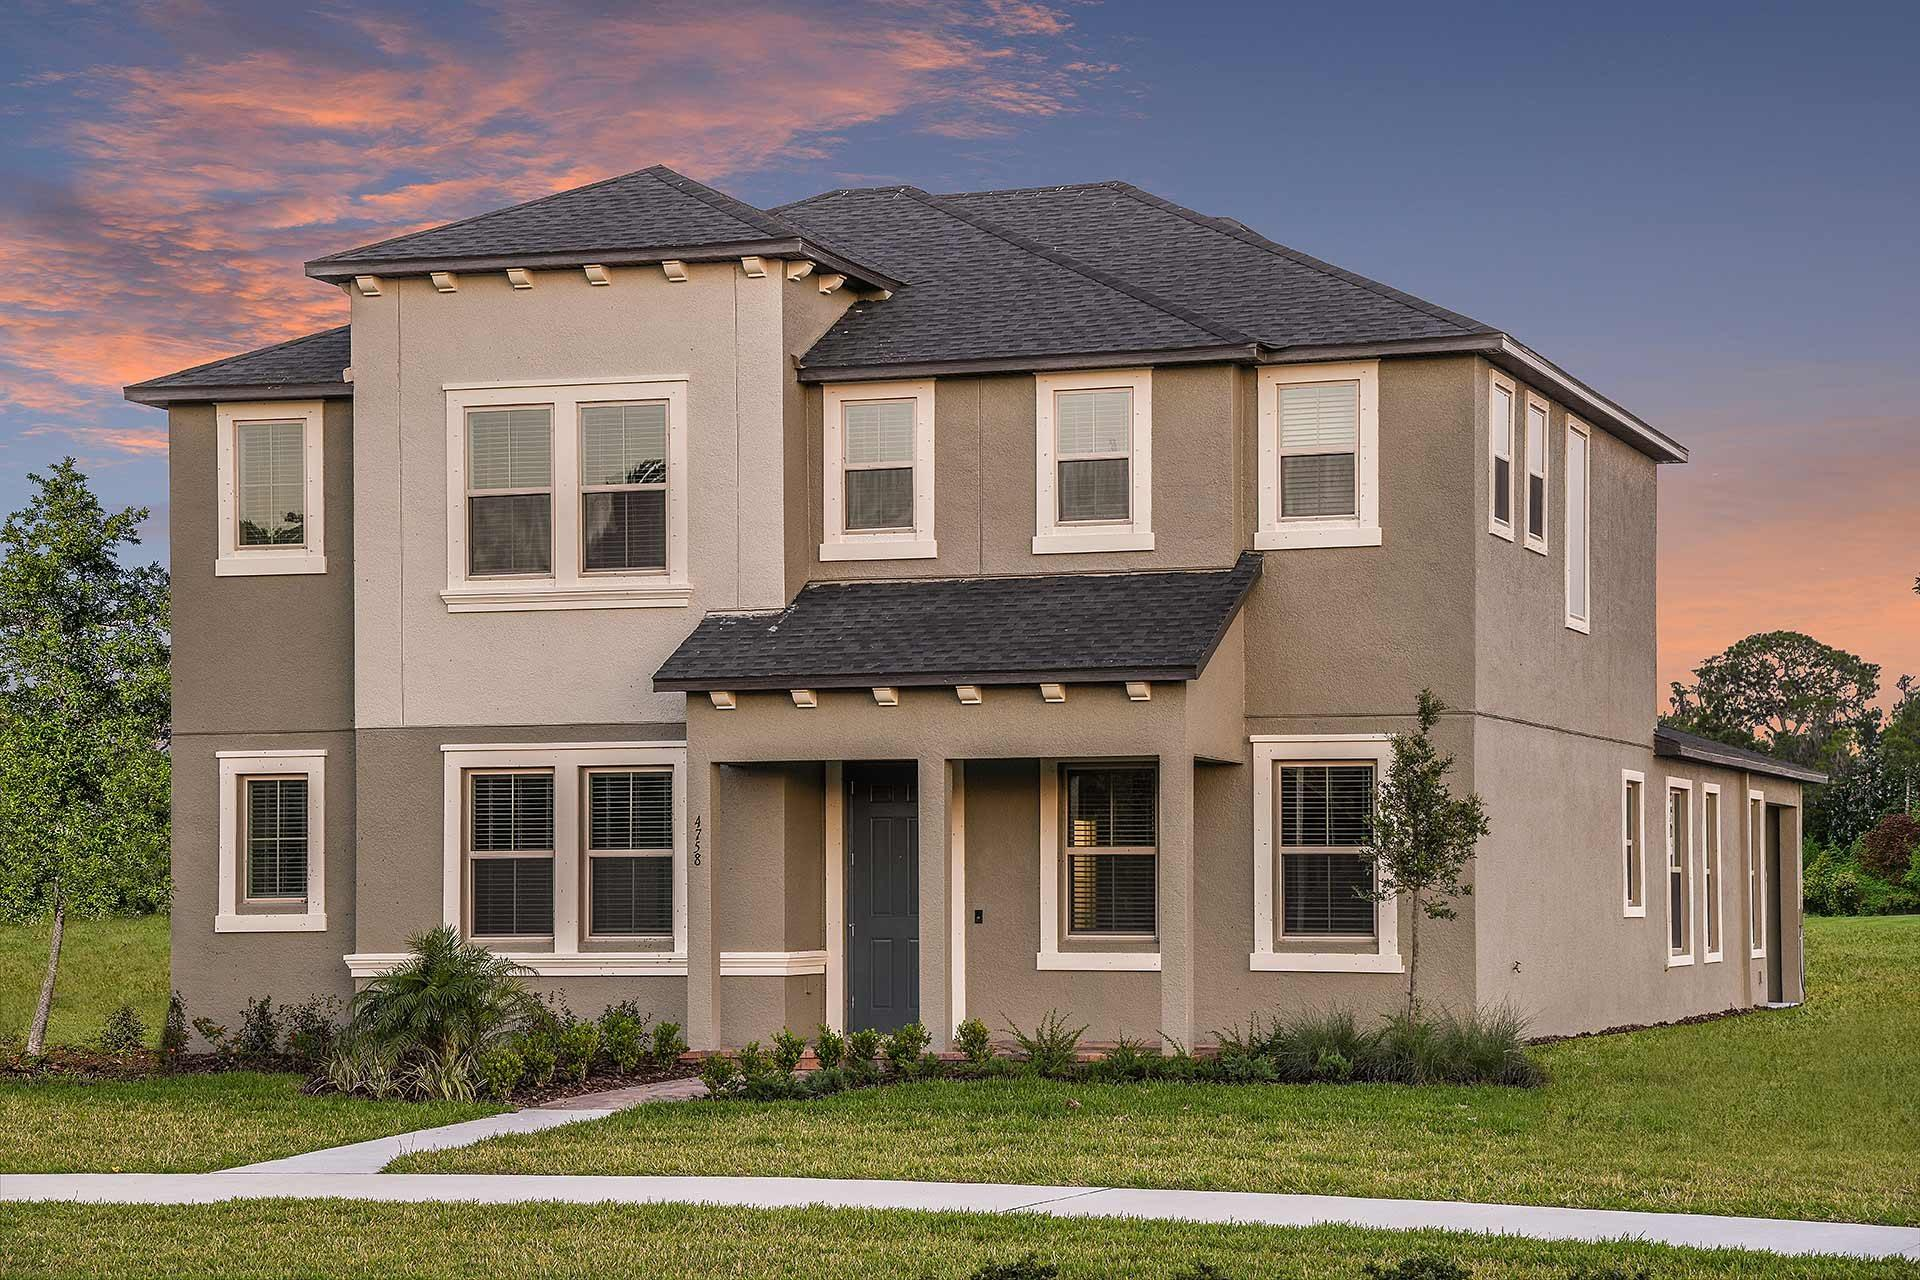 Enjoyable Bexley Bexley Garden By Lennar New Homes For Sale Land O Lakes Fl 6 Photos Trulia Download Free Architecture Designs Scobabritishbridgeorg